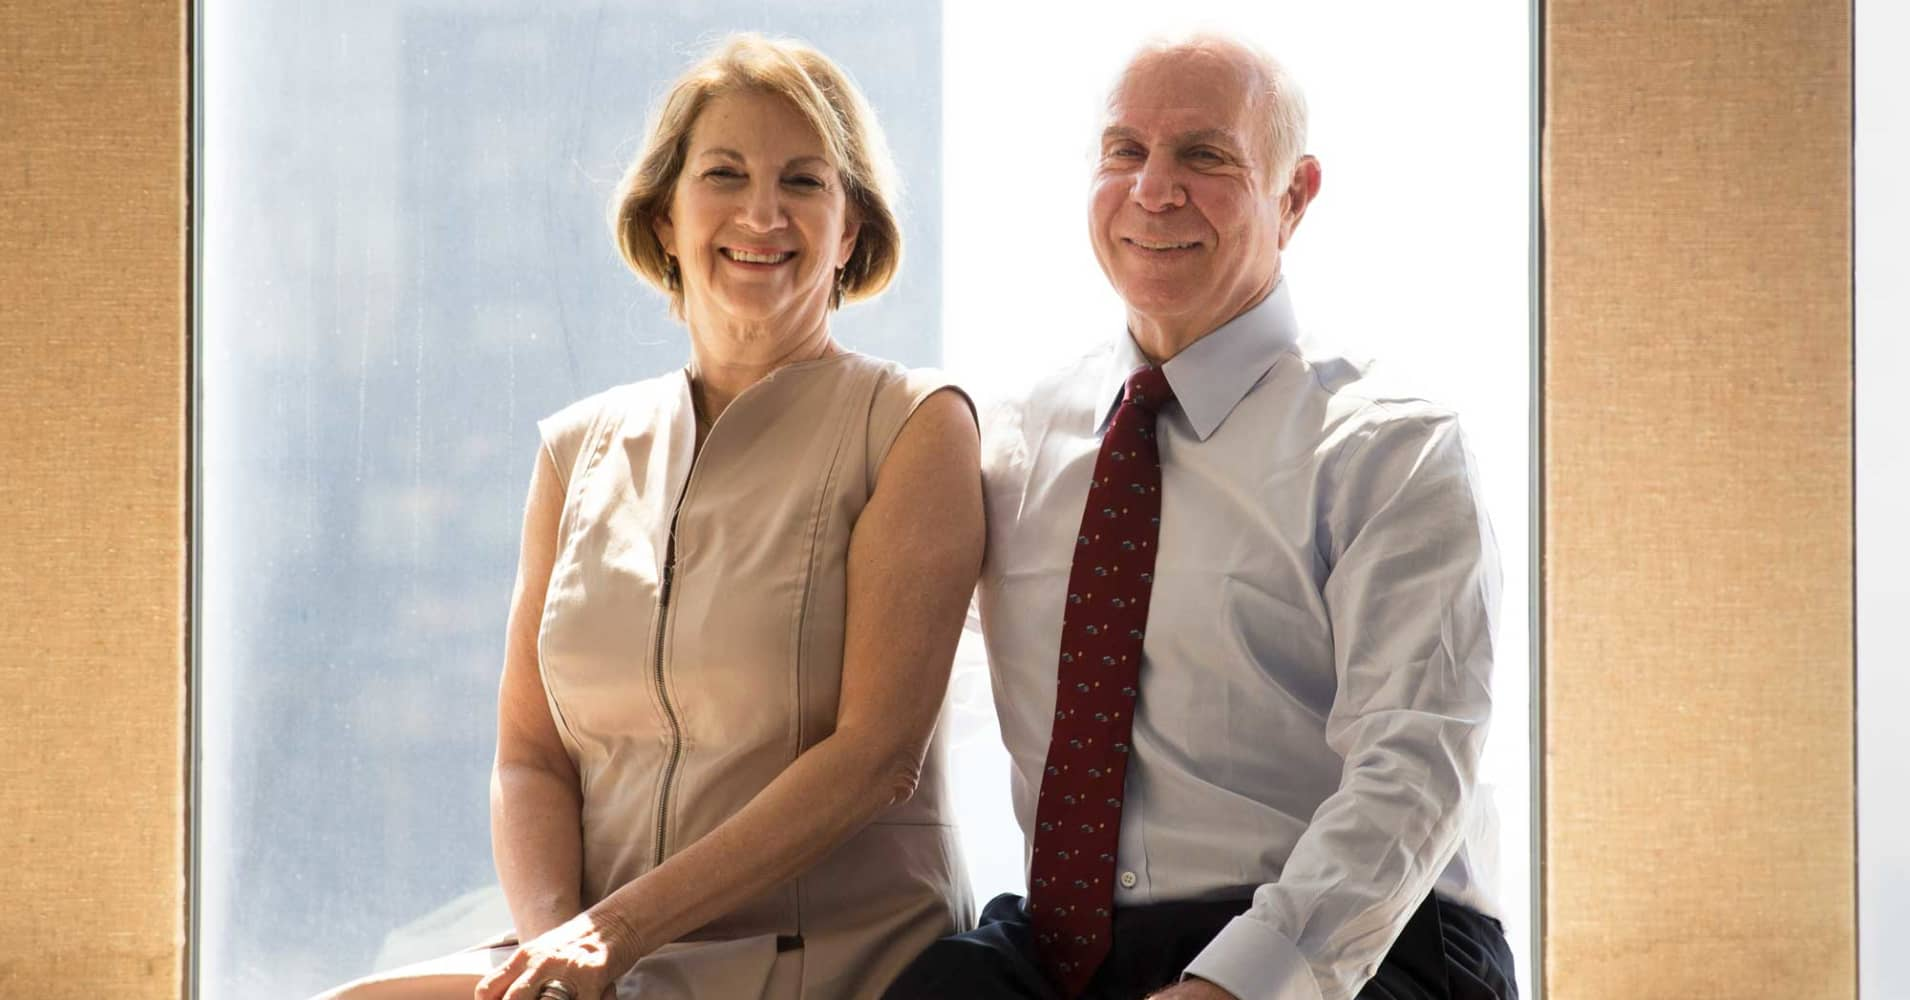 Ron Weiner and his wife Vicki, who are both members of Tiger 21, an investment club for people with more than $10 million, in New York, May 18, 2017.